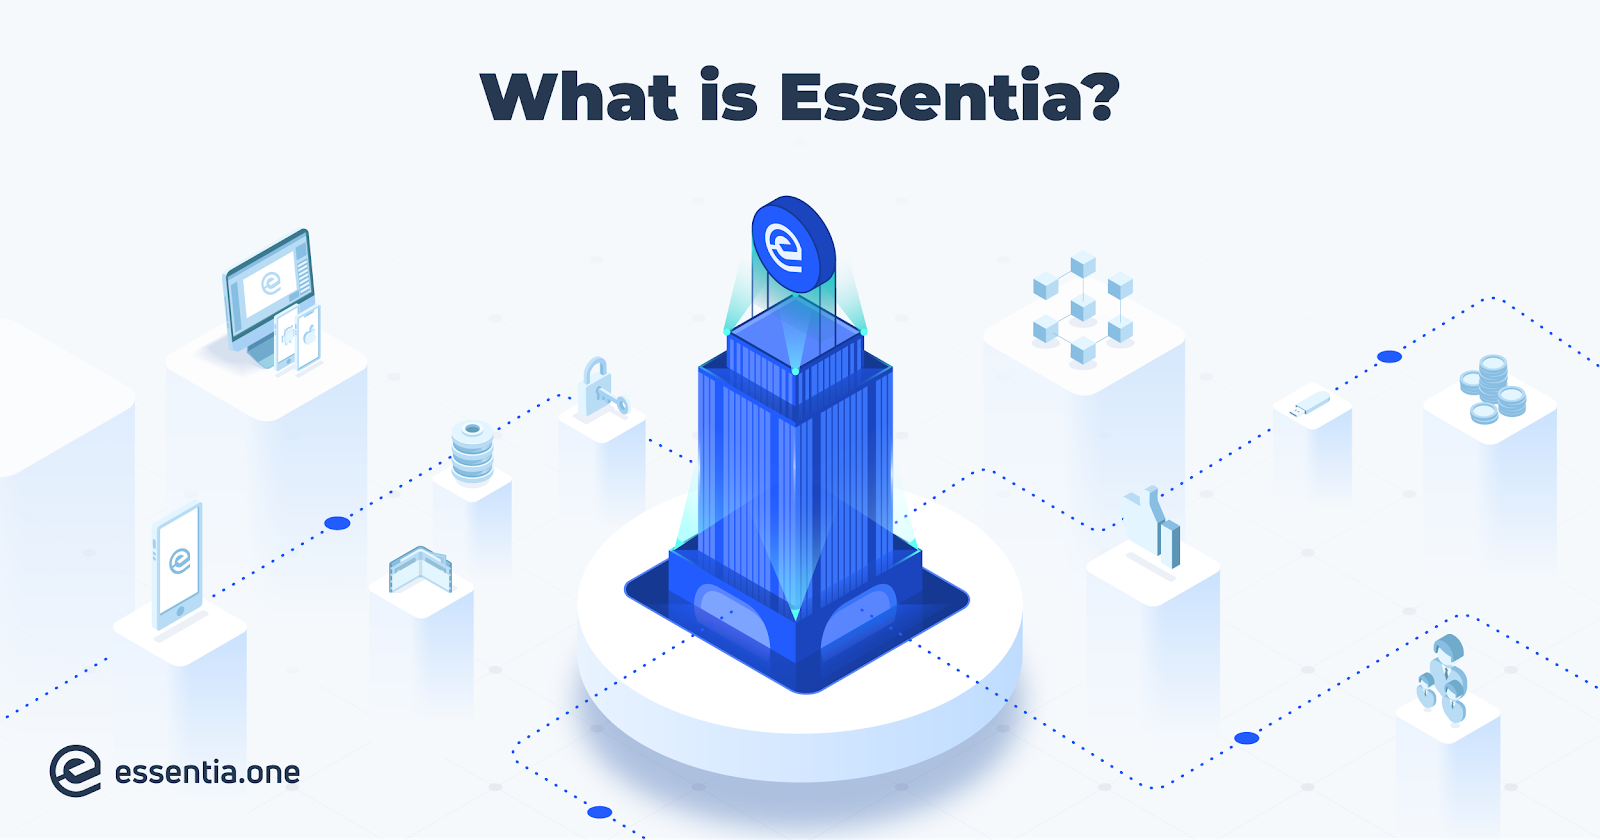 New to our project? Learn more about Essentia